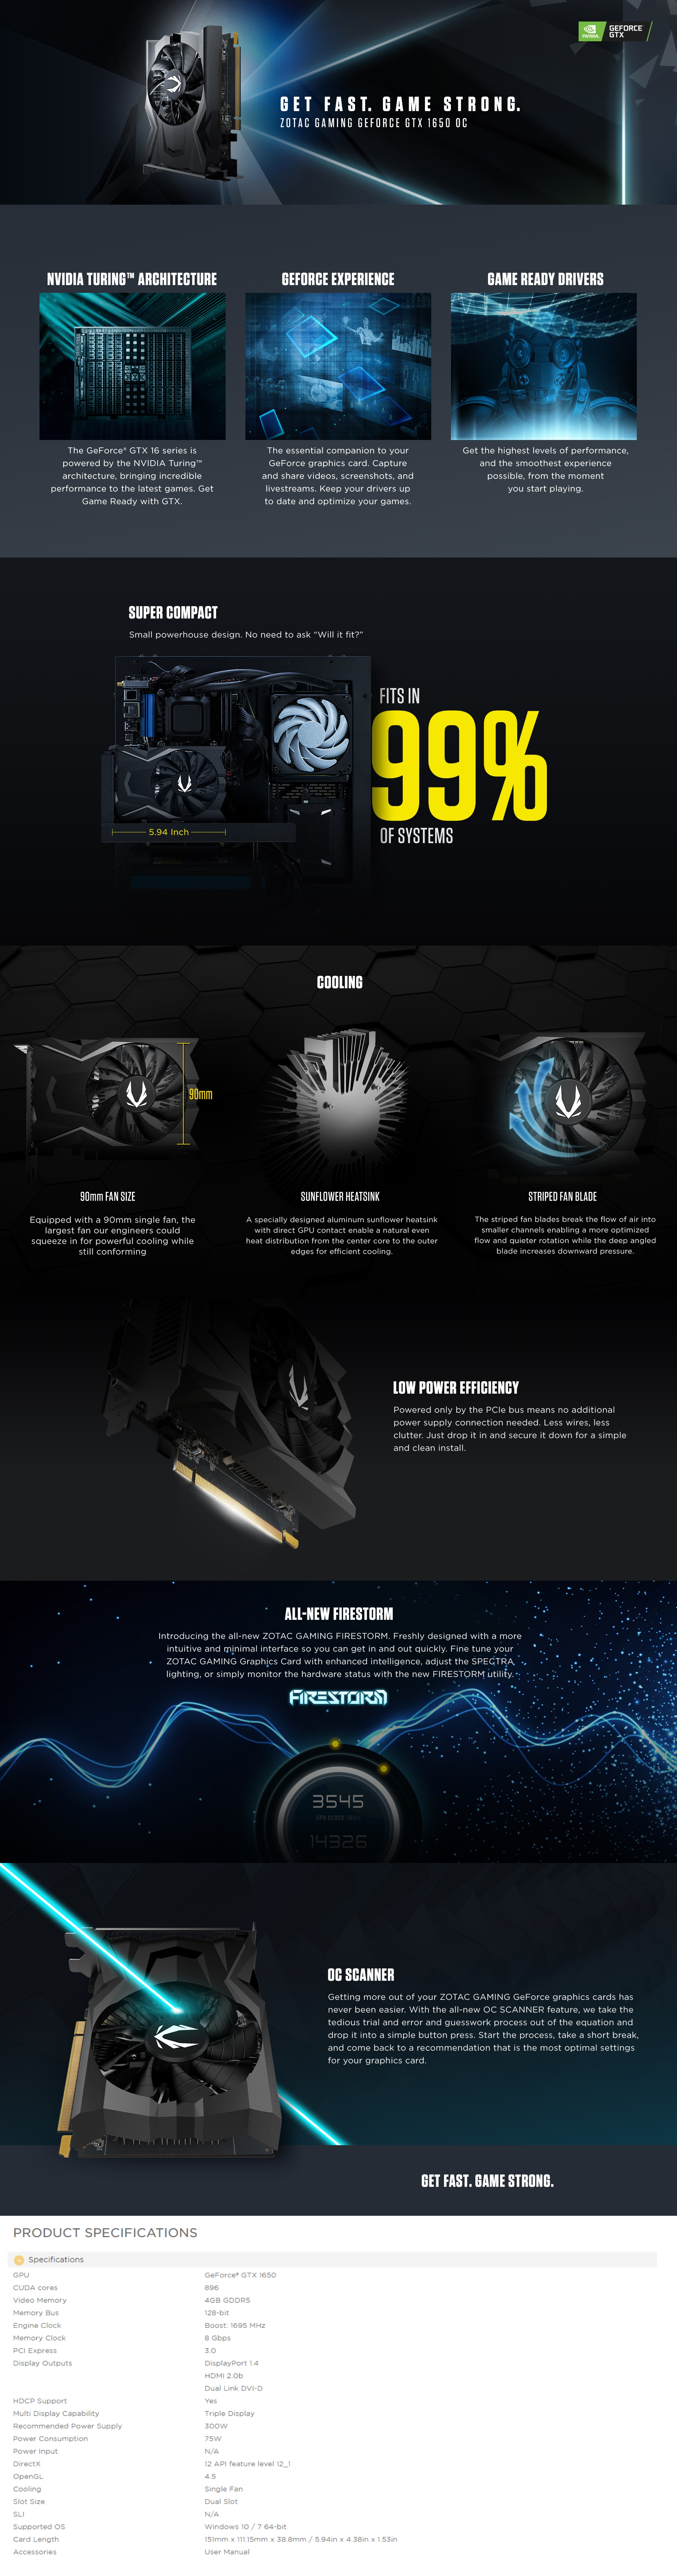 A large marketing image providing additional information about the product ZOTAC GAMING GeForce GTX1650 OC 4GB GDDR5 - Additional alt info not provided